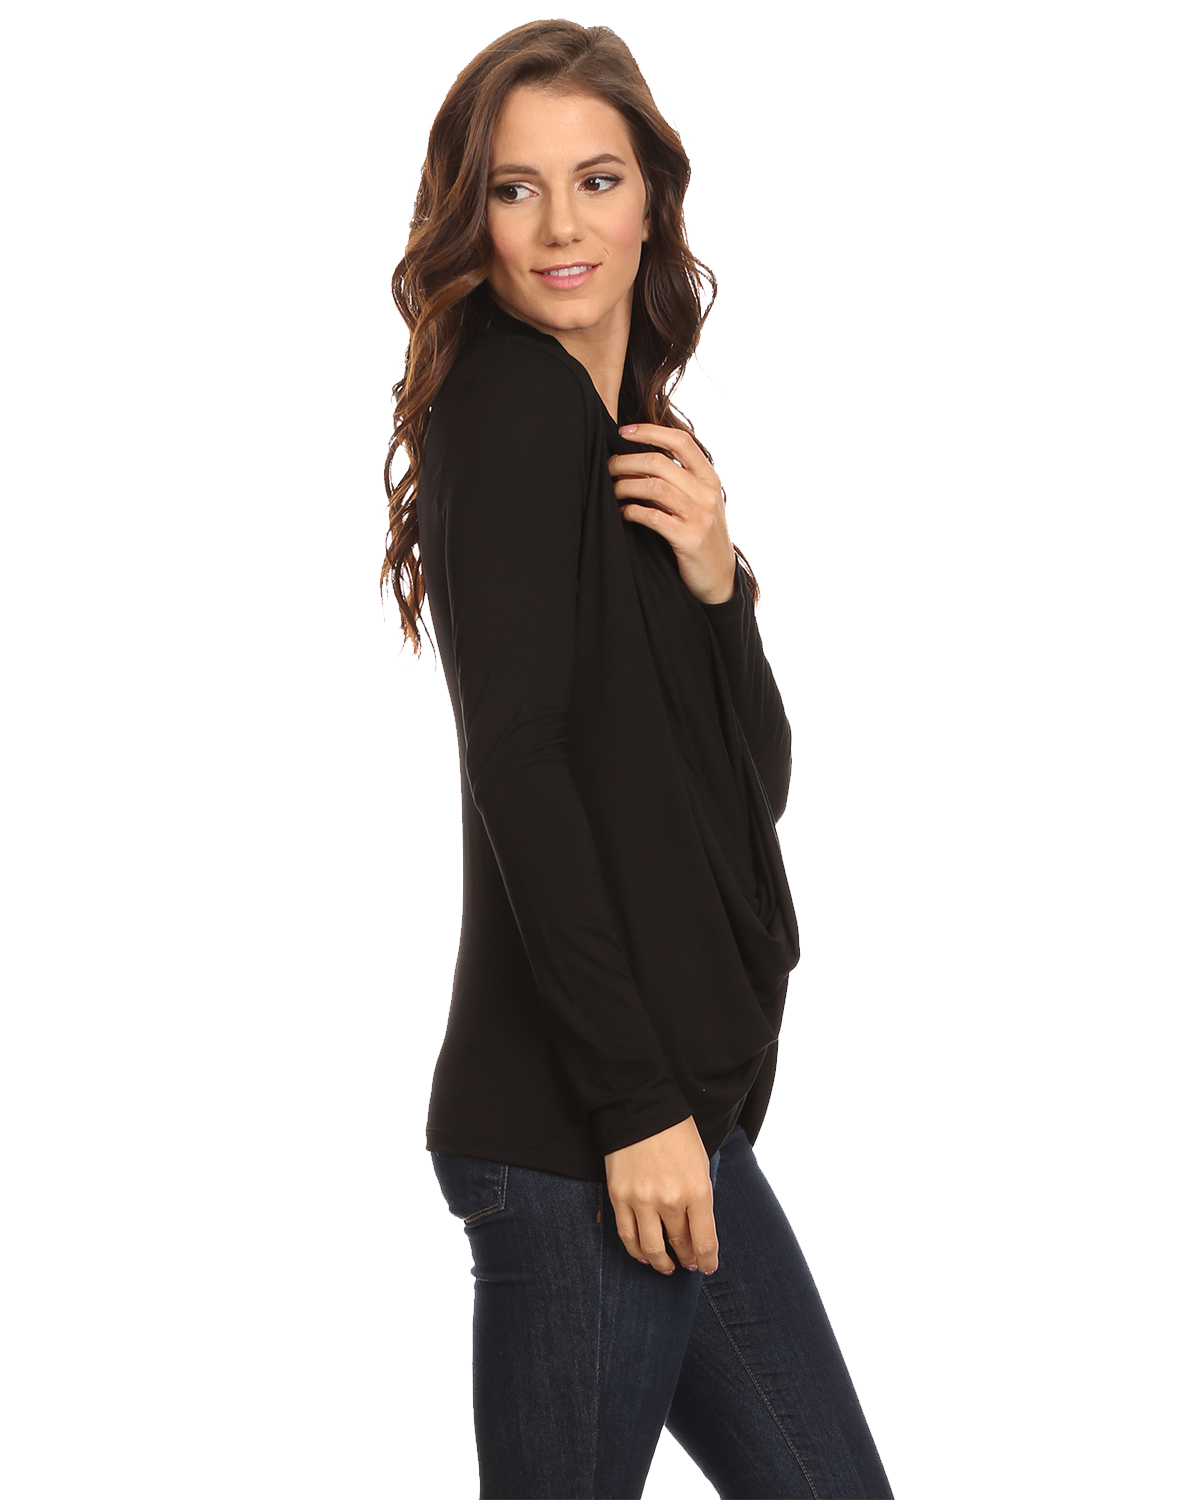 2145dfe3835 Details about Women's Long Sleeve Criss Cross Cardigan Small to 3XL  Athleisure Made in USA